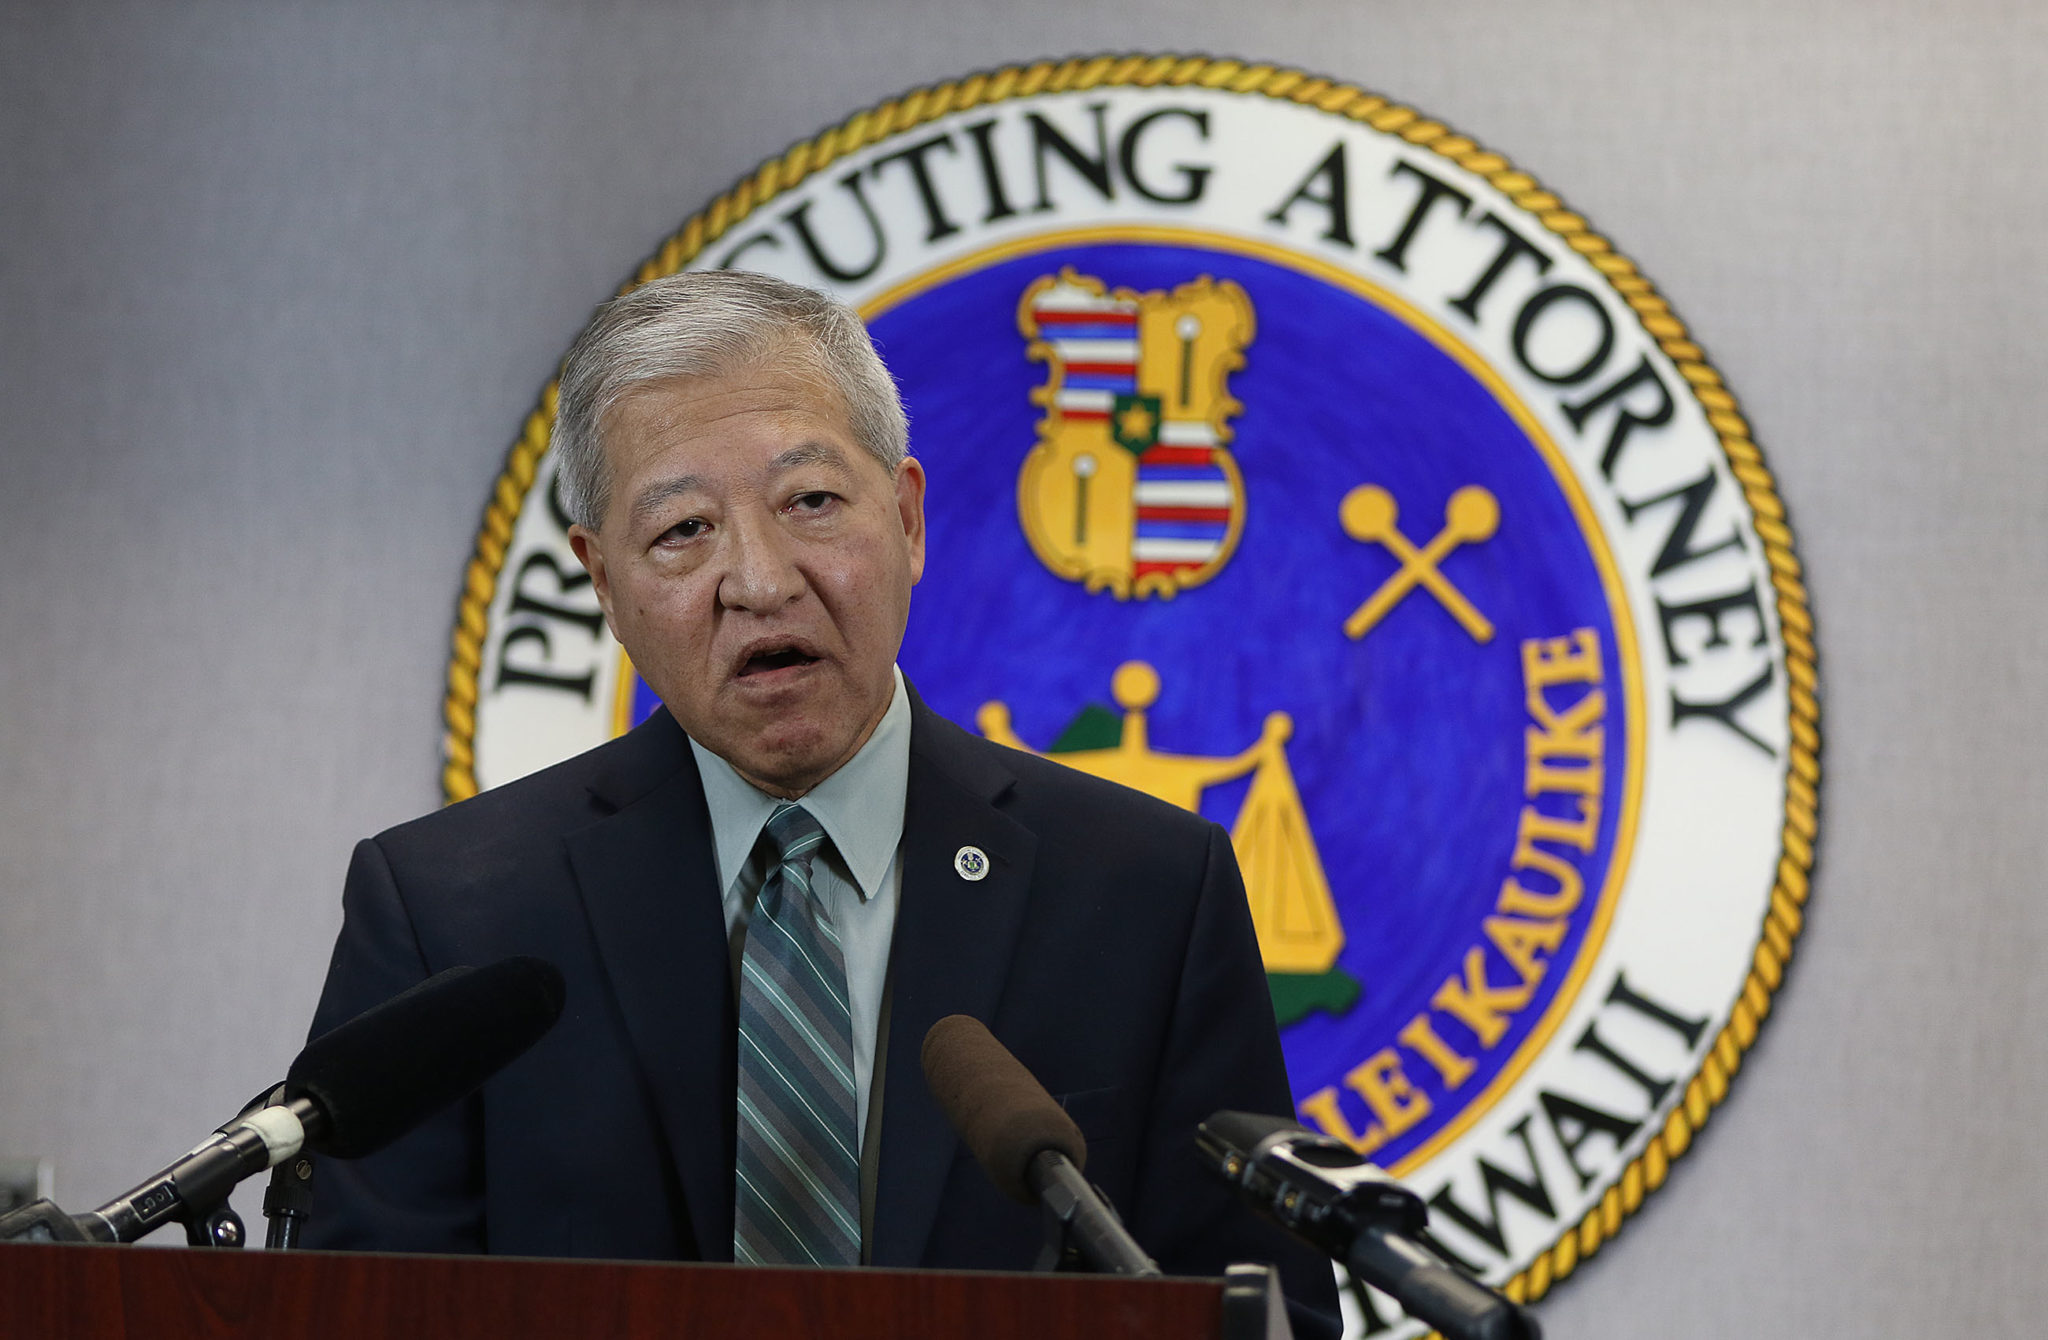 Prosecutor Keith Kaneshiro responds to Deedy trial during presser.